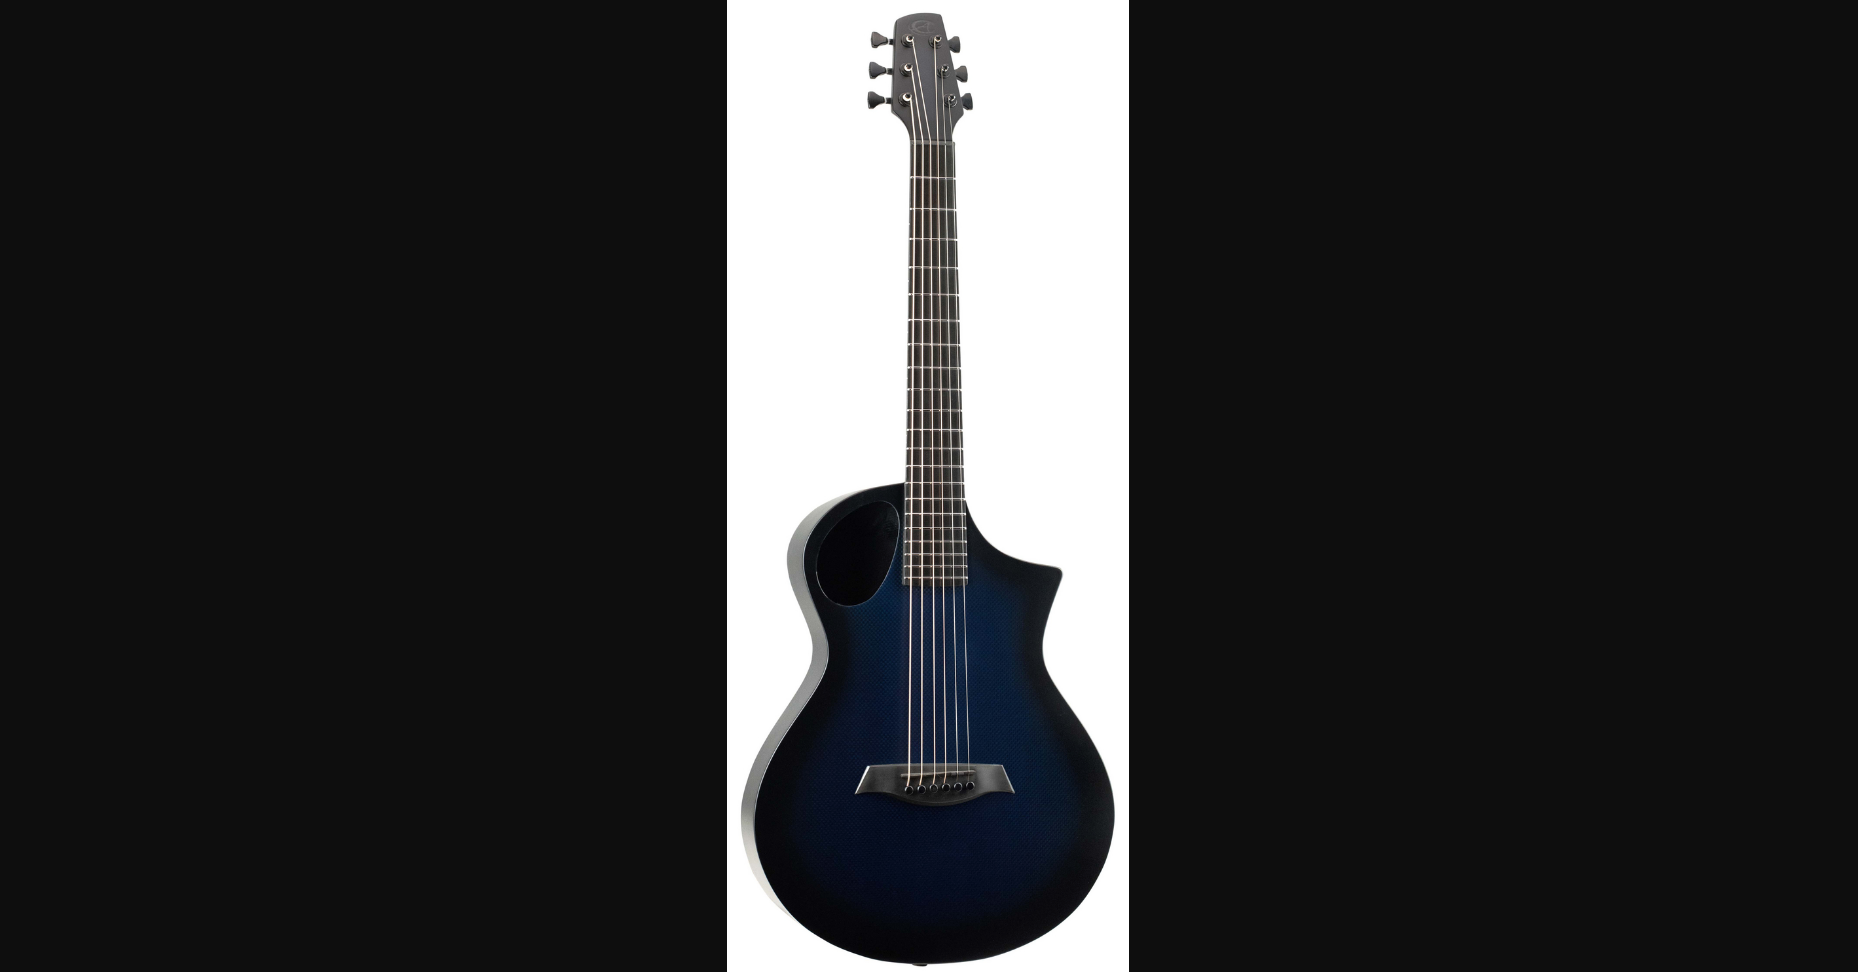 Cargo Satin Blue Burst